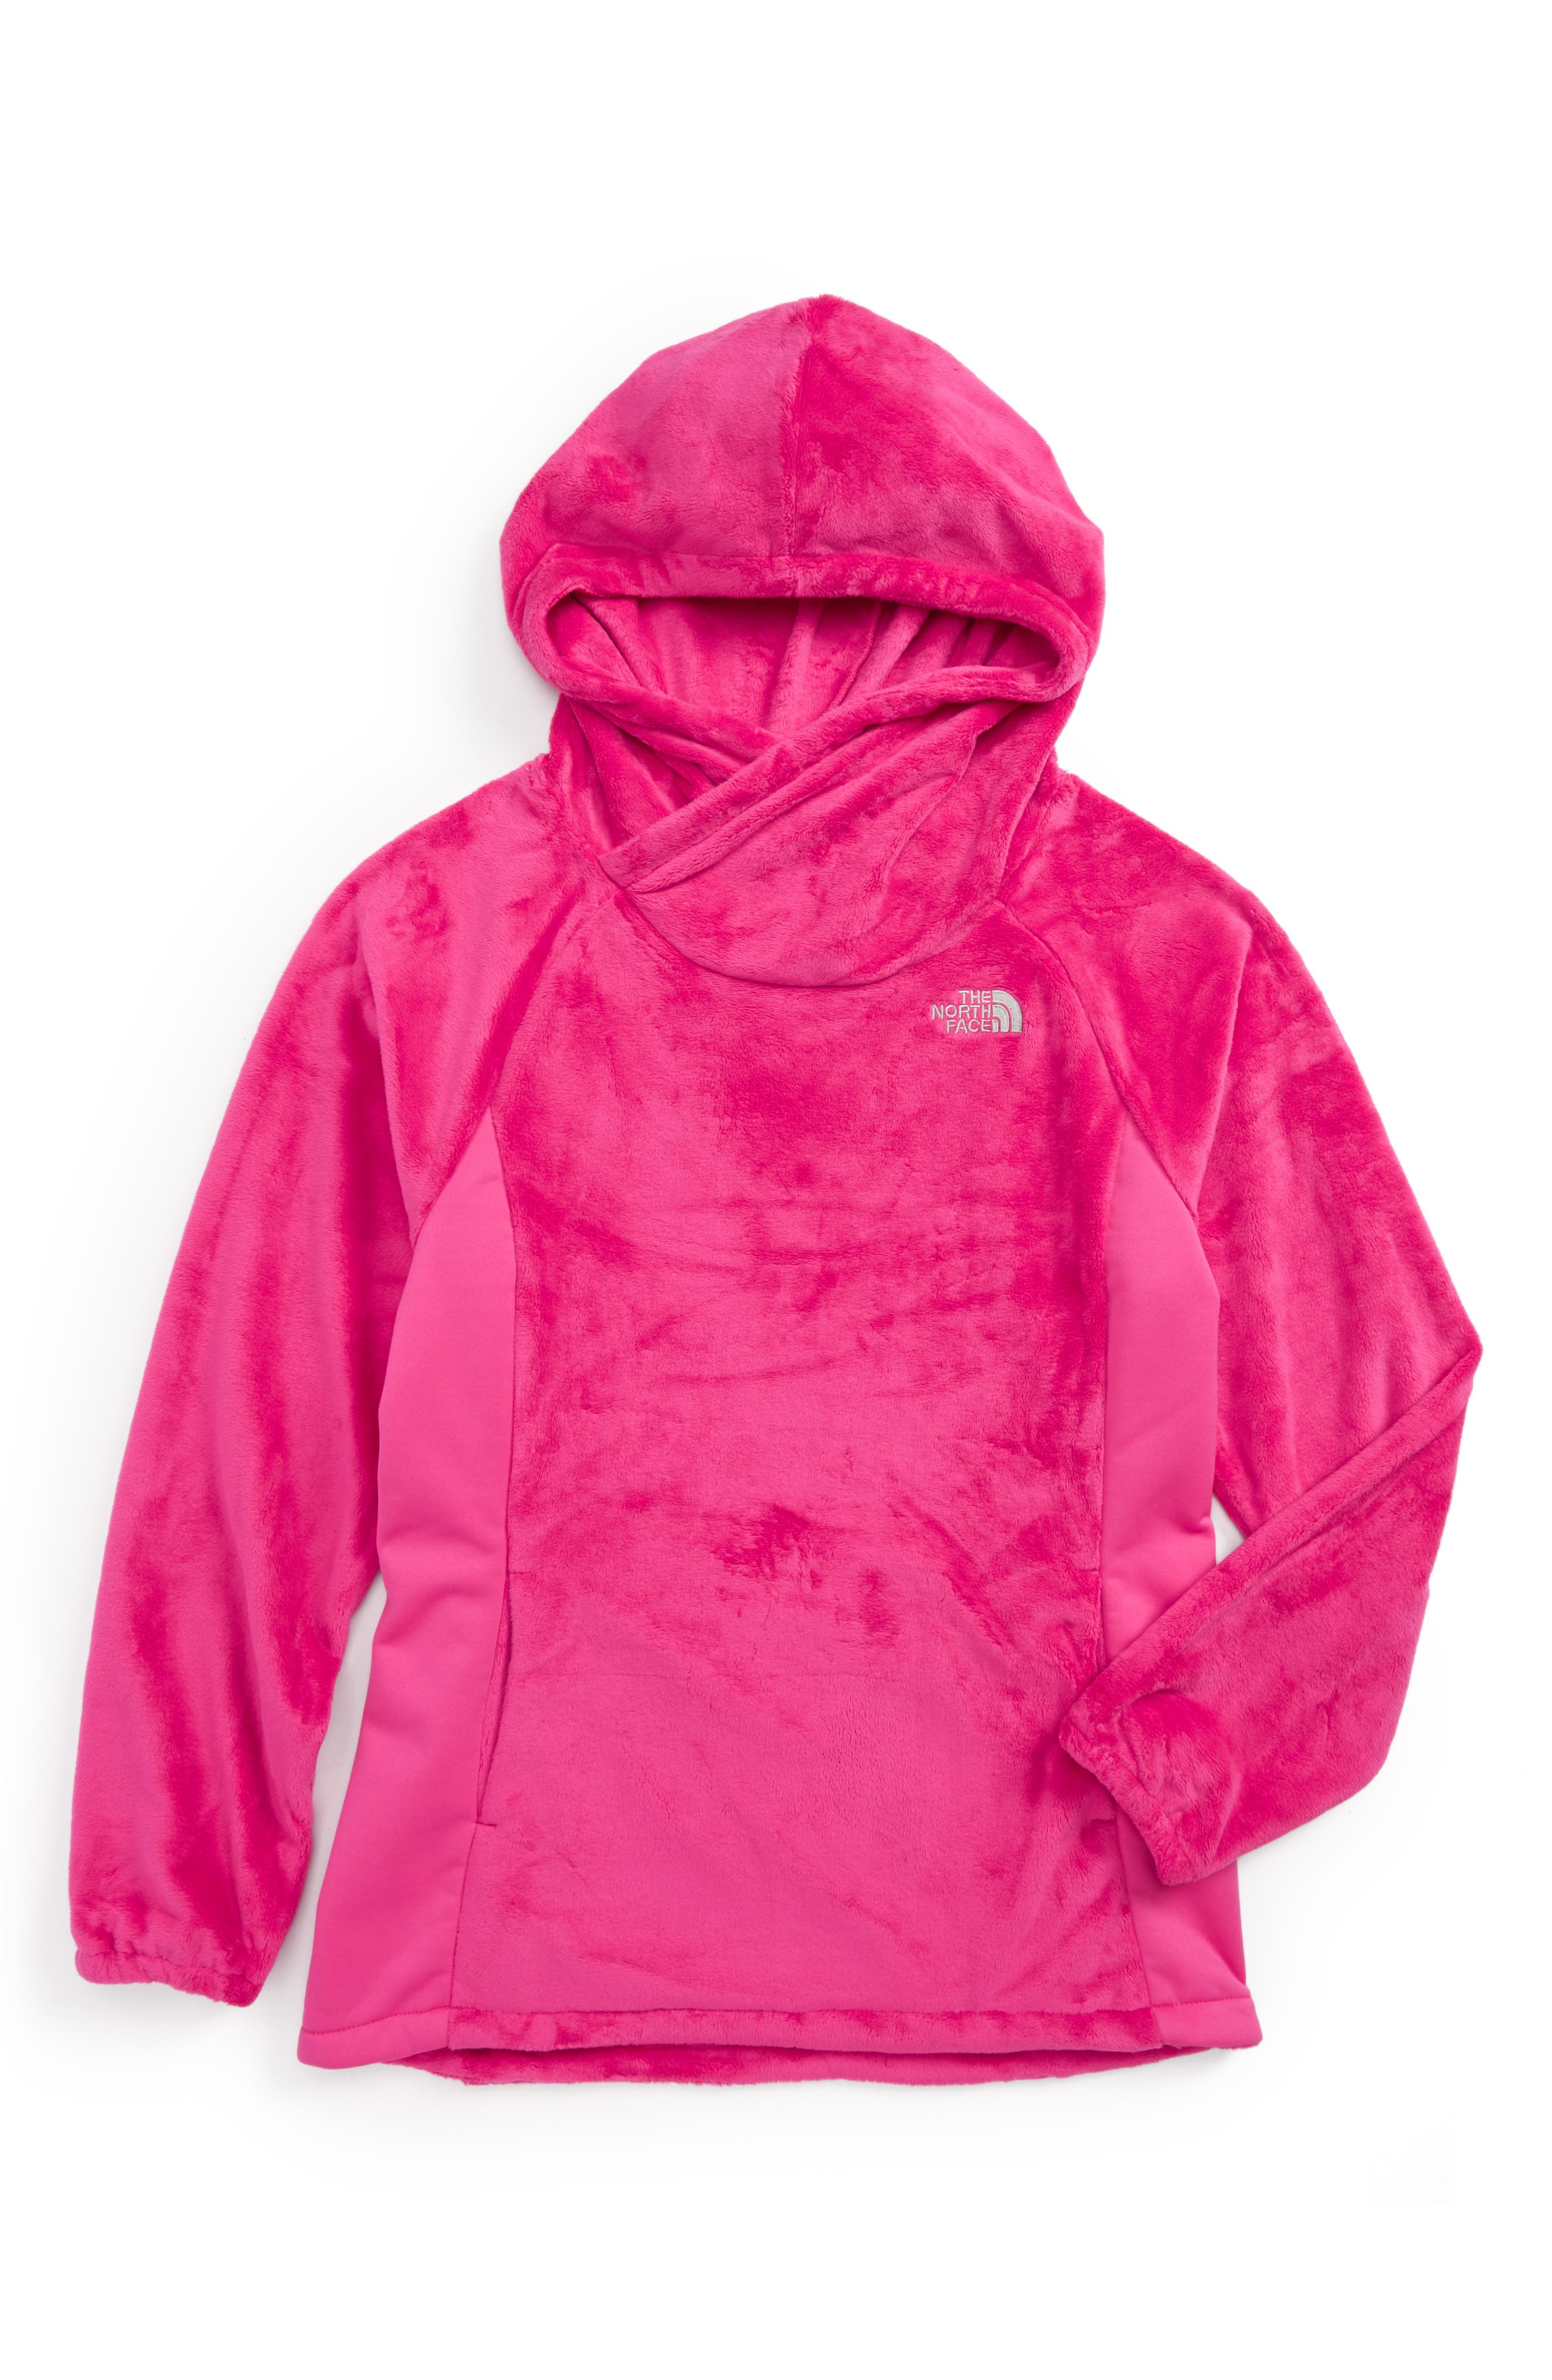 Oso Fleece Pullover,                             Main thumbnail 1, color,                             Petticoat Pink